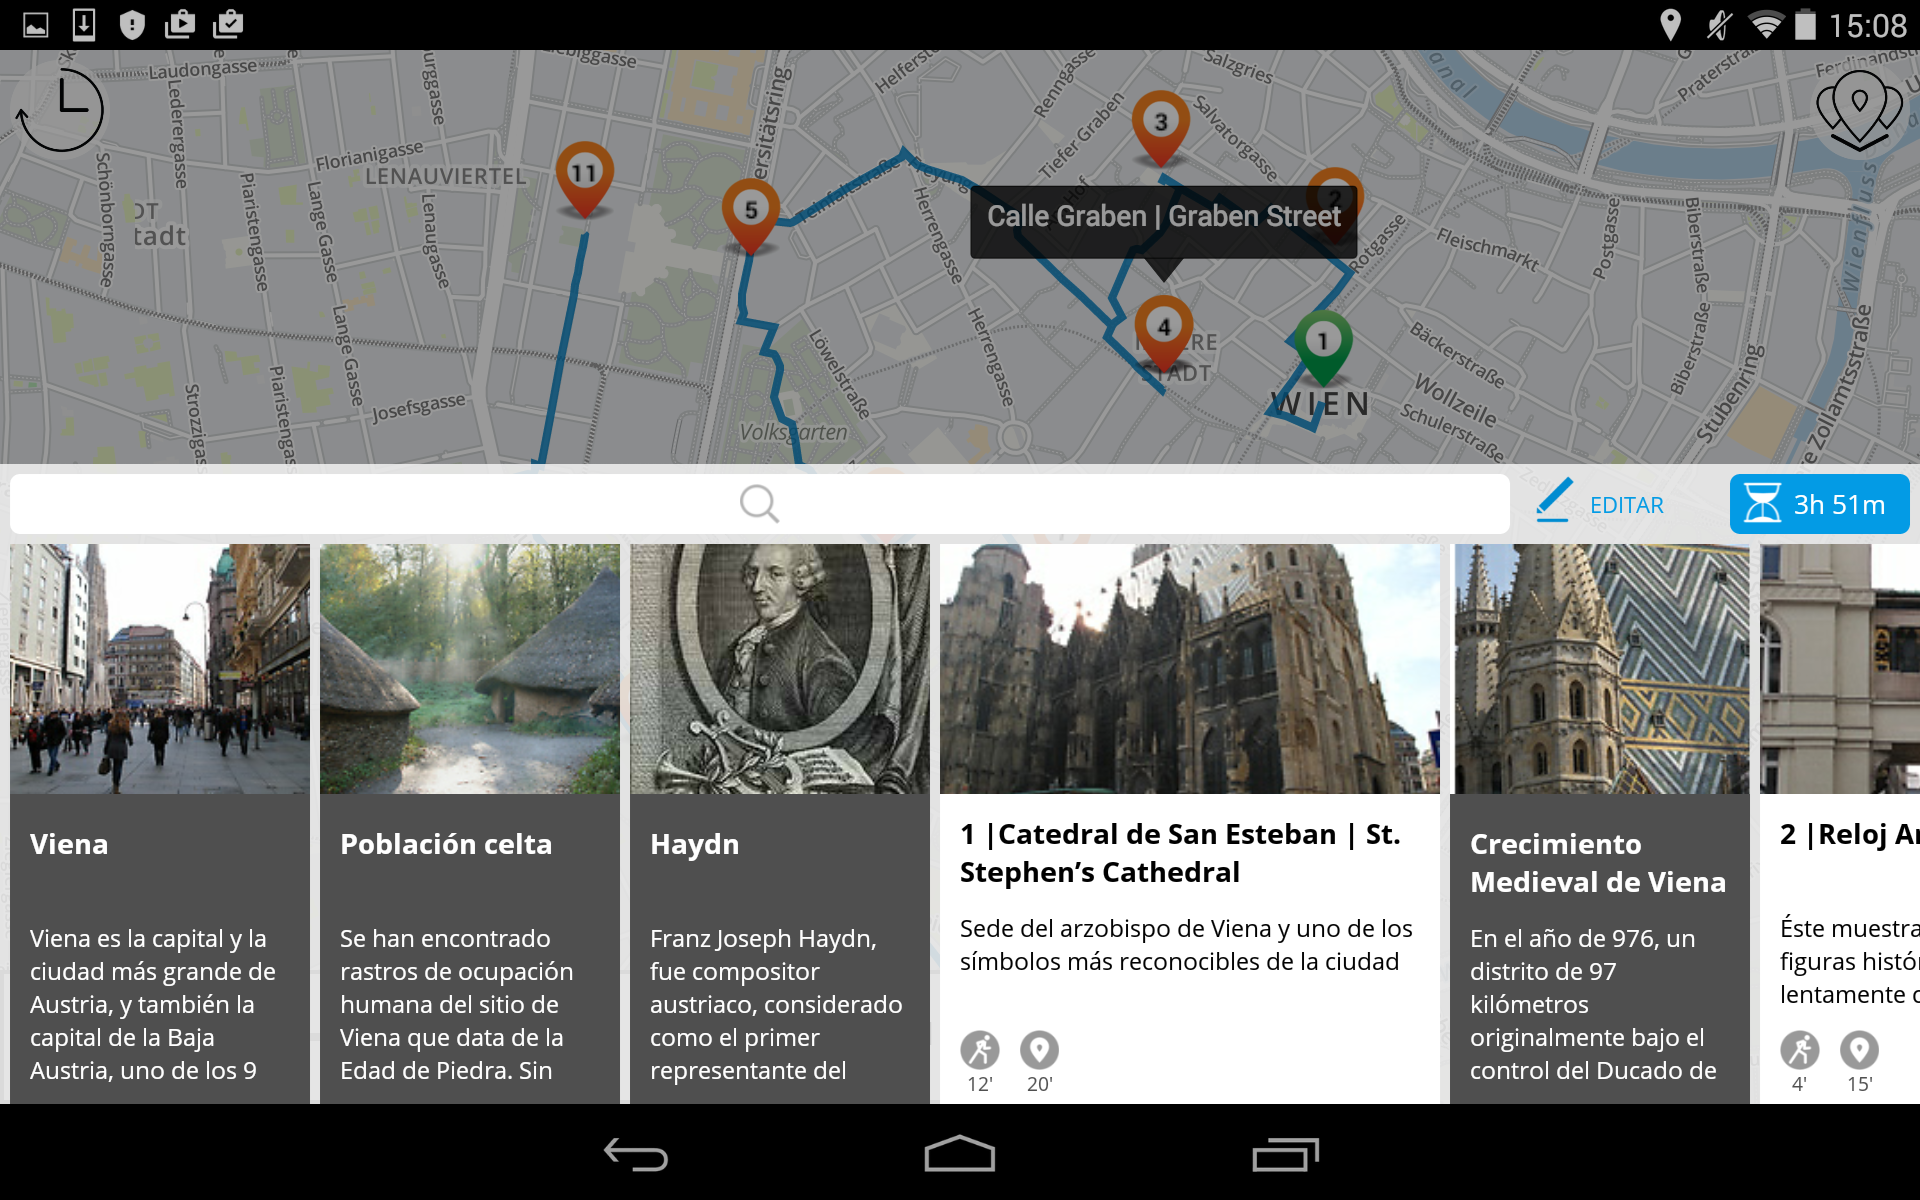 Amazon.com: Vienna Premium | JiTT City Guide & Tour Planner with Offline Maps (German Version): Appstore for Android